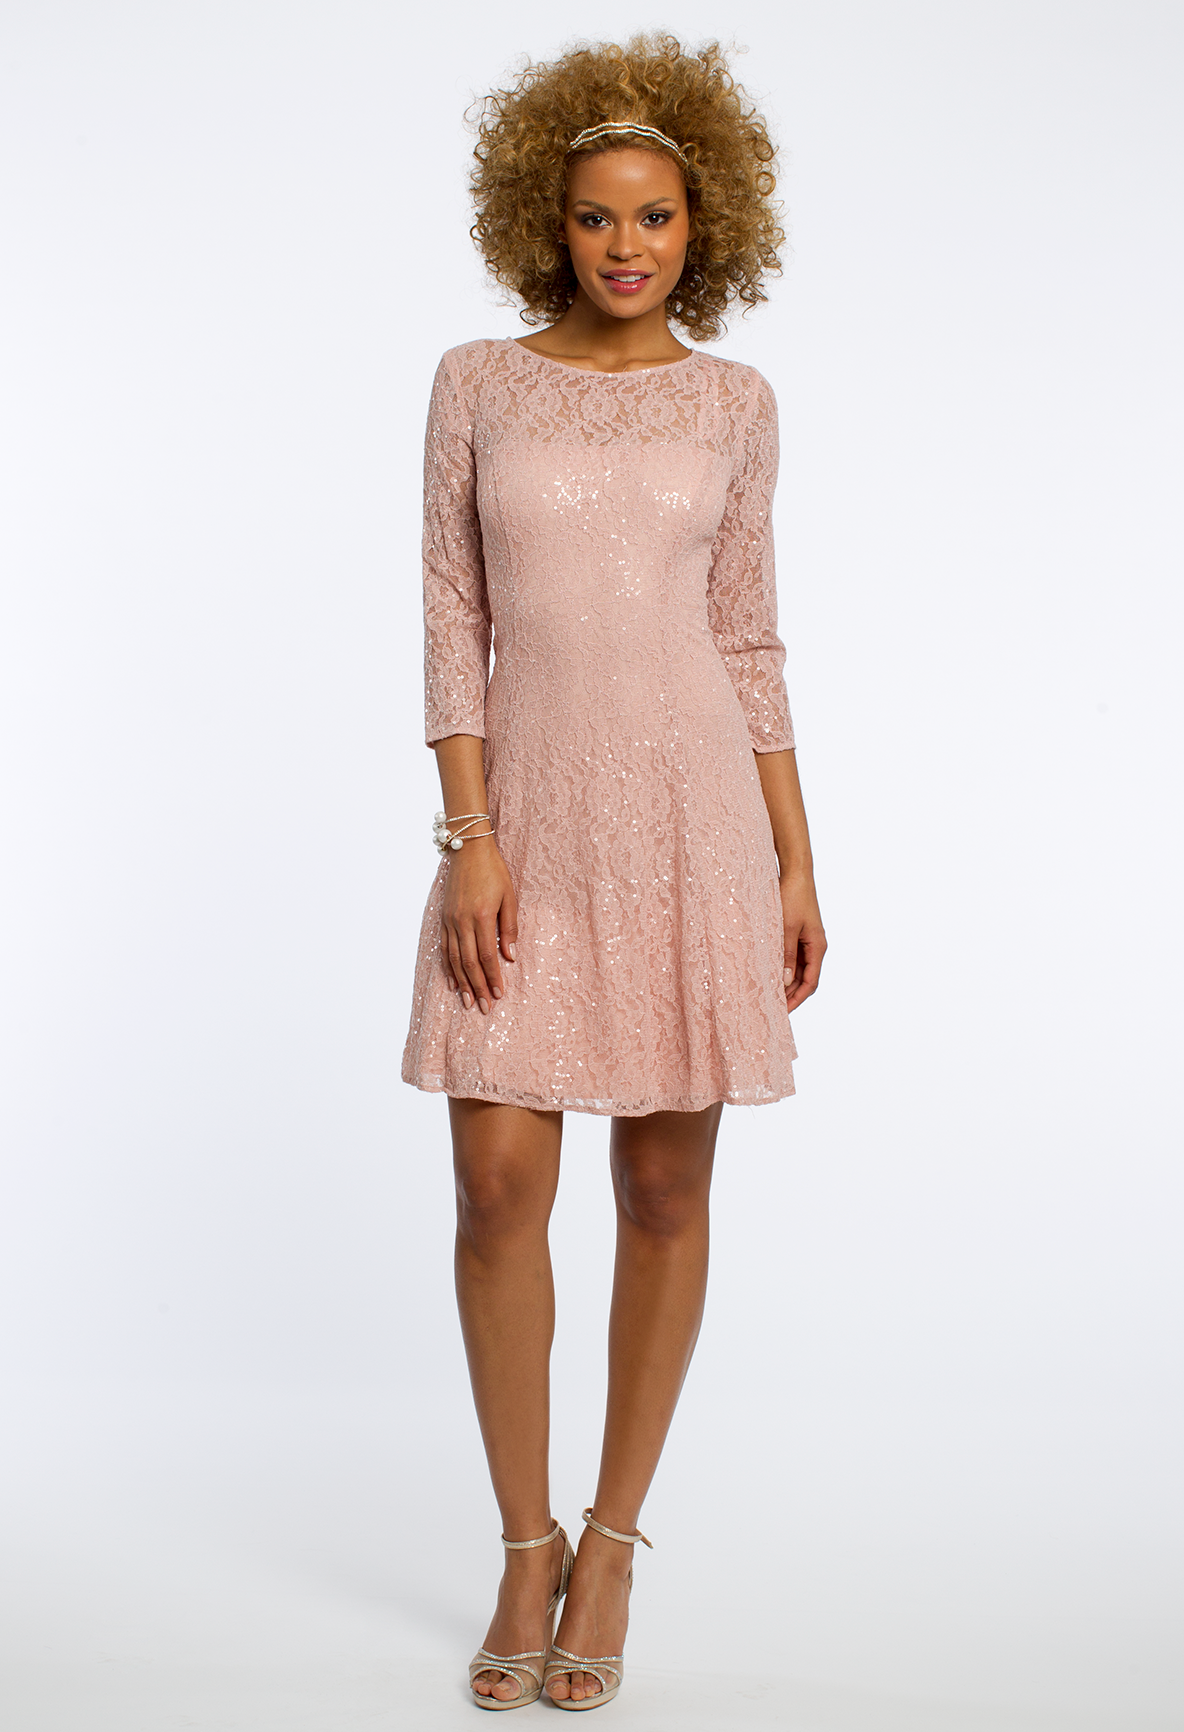 Dusty rose lace dress with sleeves camillelavie chic shorties